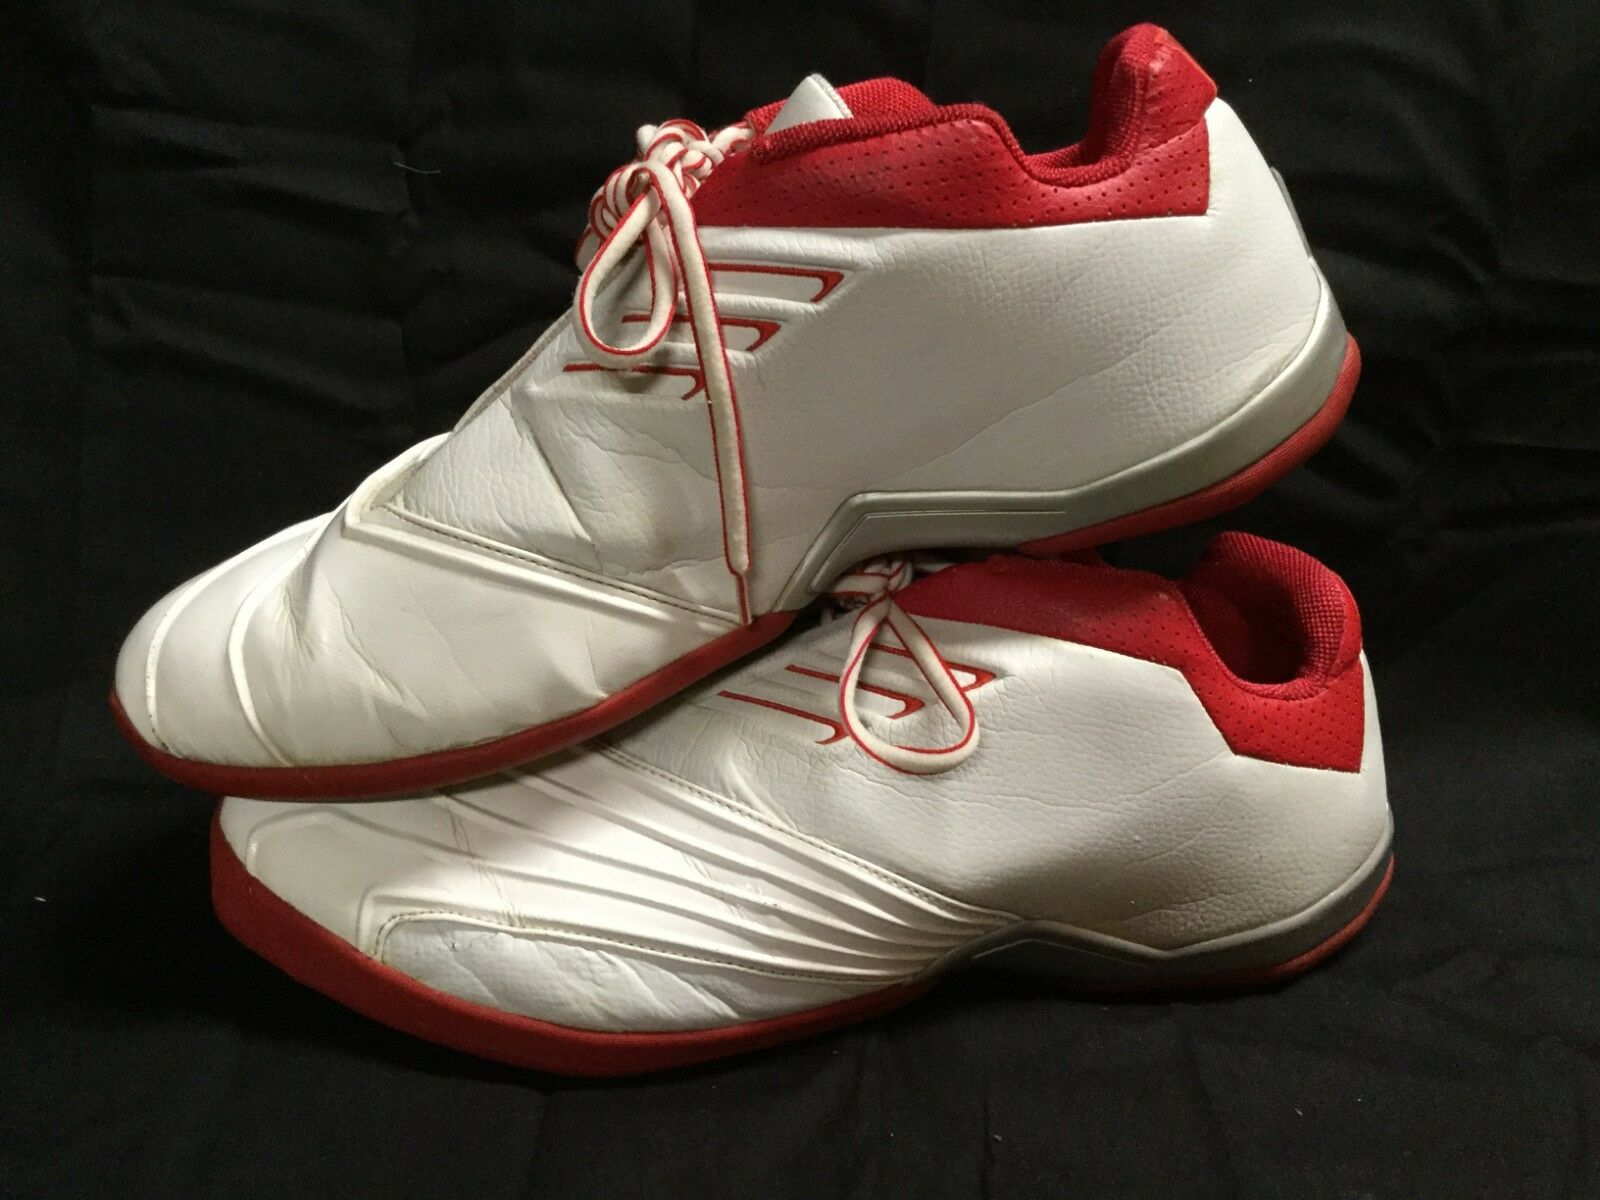 Adidas TMAC 2, Mens size 15 - rare color way (see pictures)